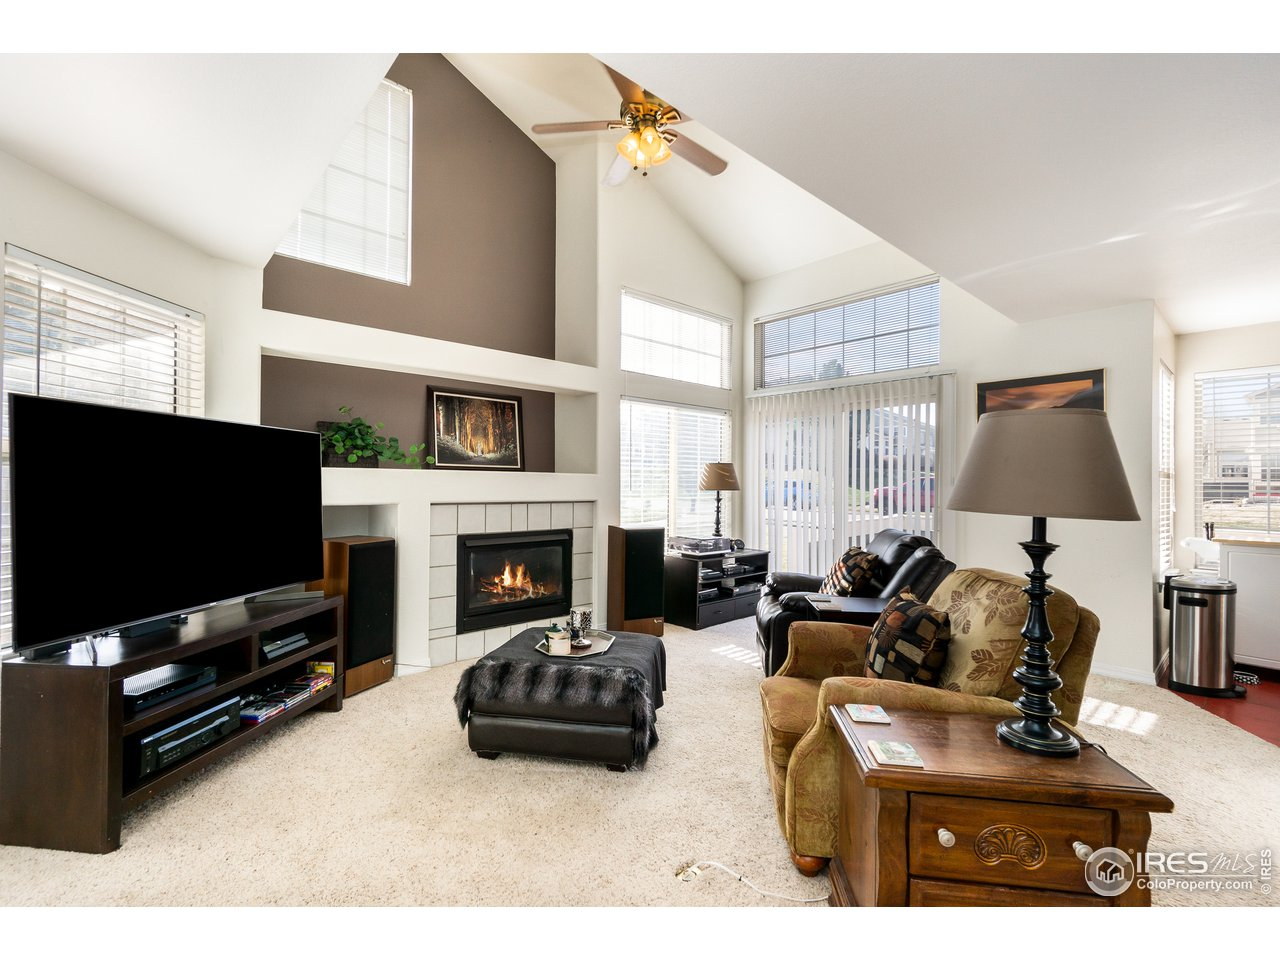 Open living room with vaulted ceilings